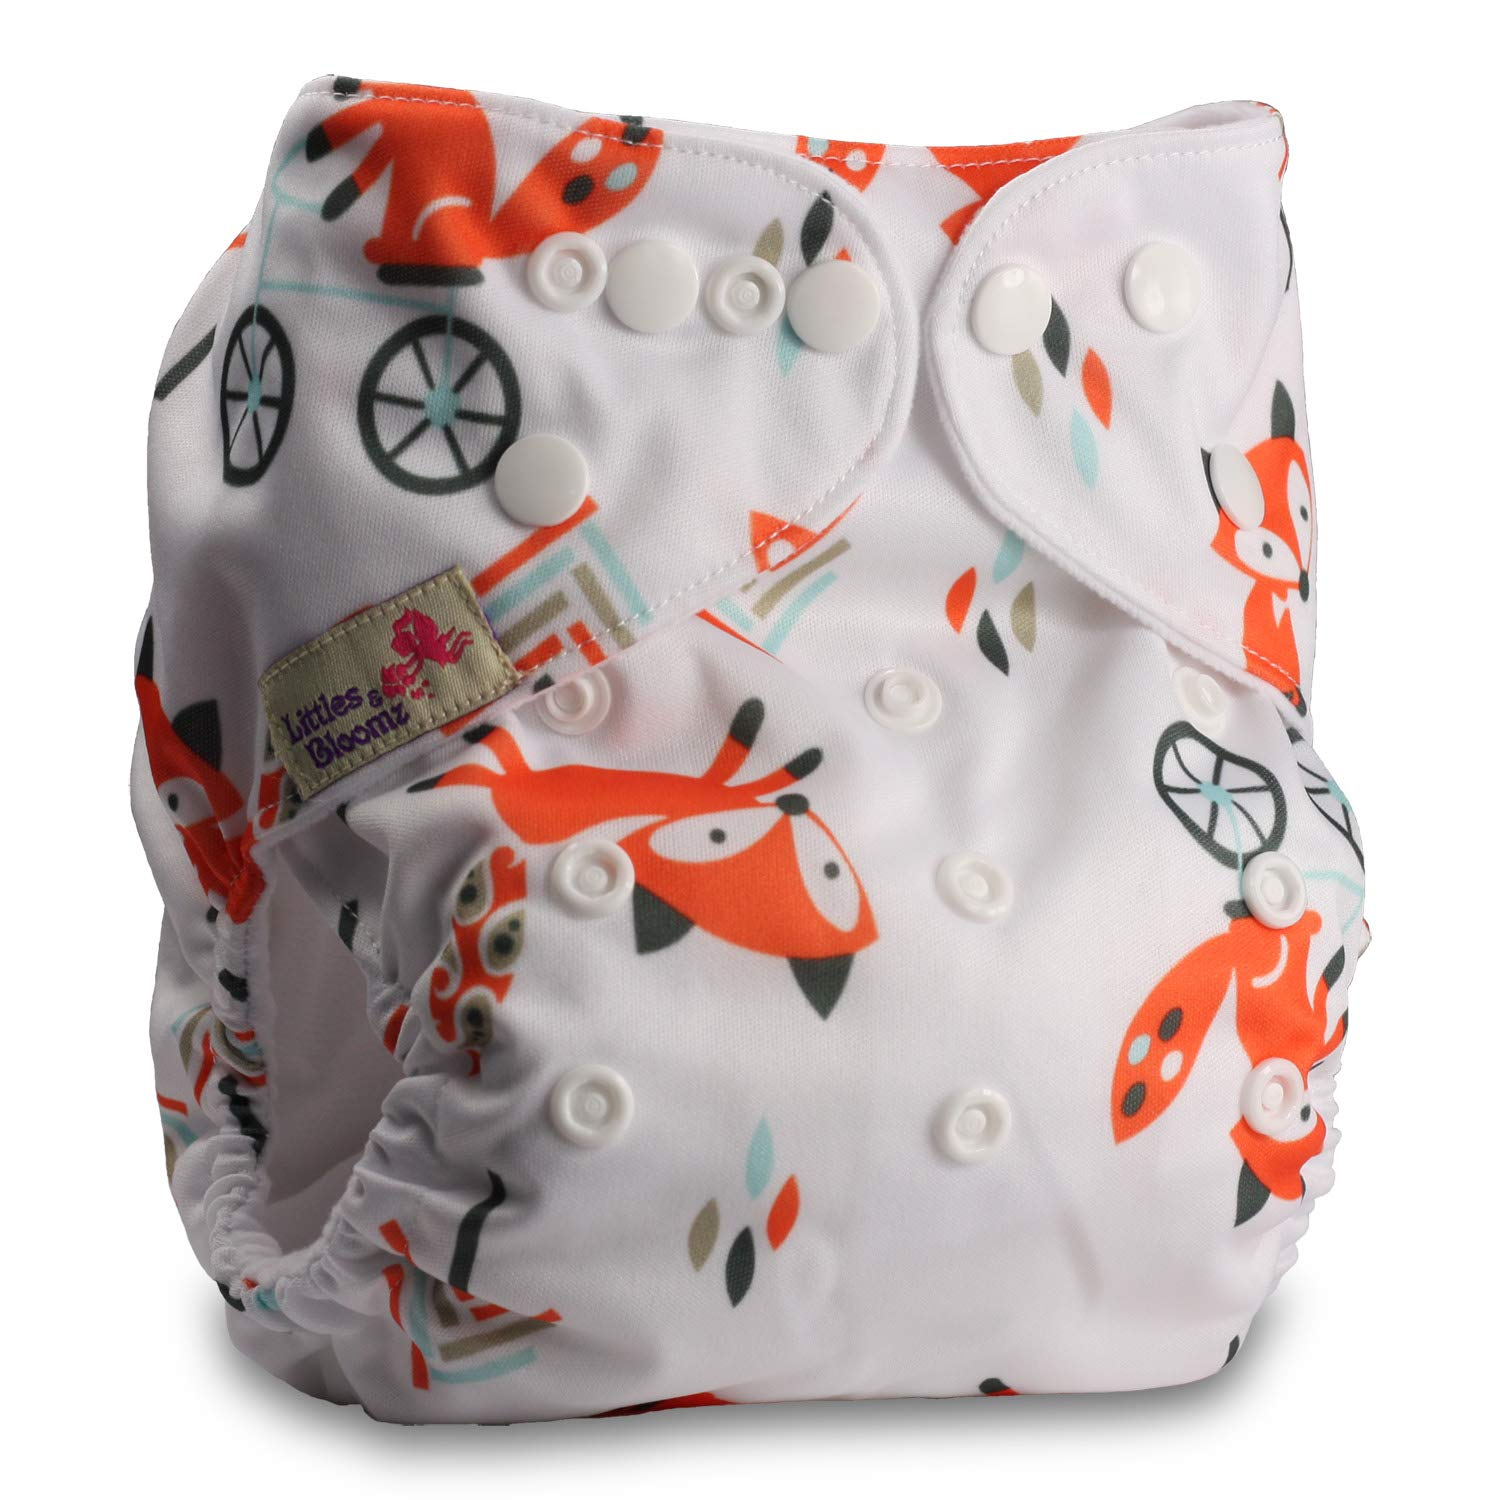 Pattern 76 Fastener: Popper Reusable Pocket Cloth Nappy with 1 Bamboo Charcoal Insert Littles /& Bloomz Set of 1